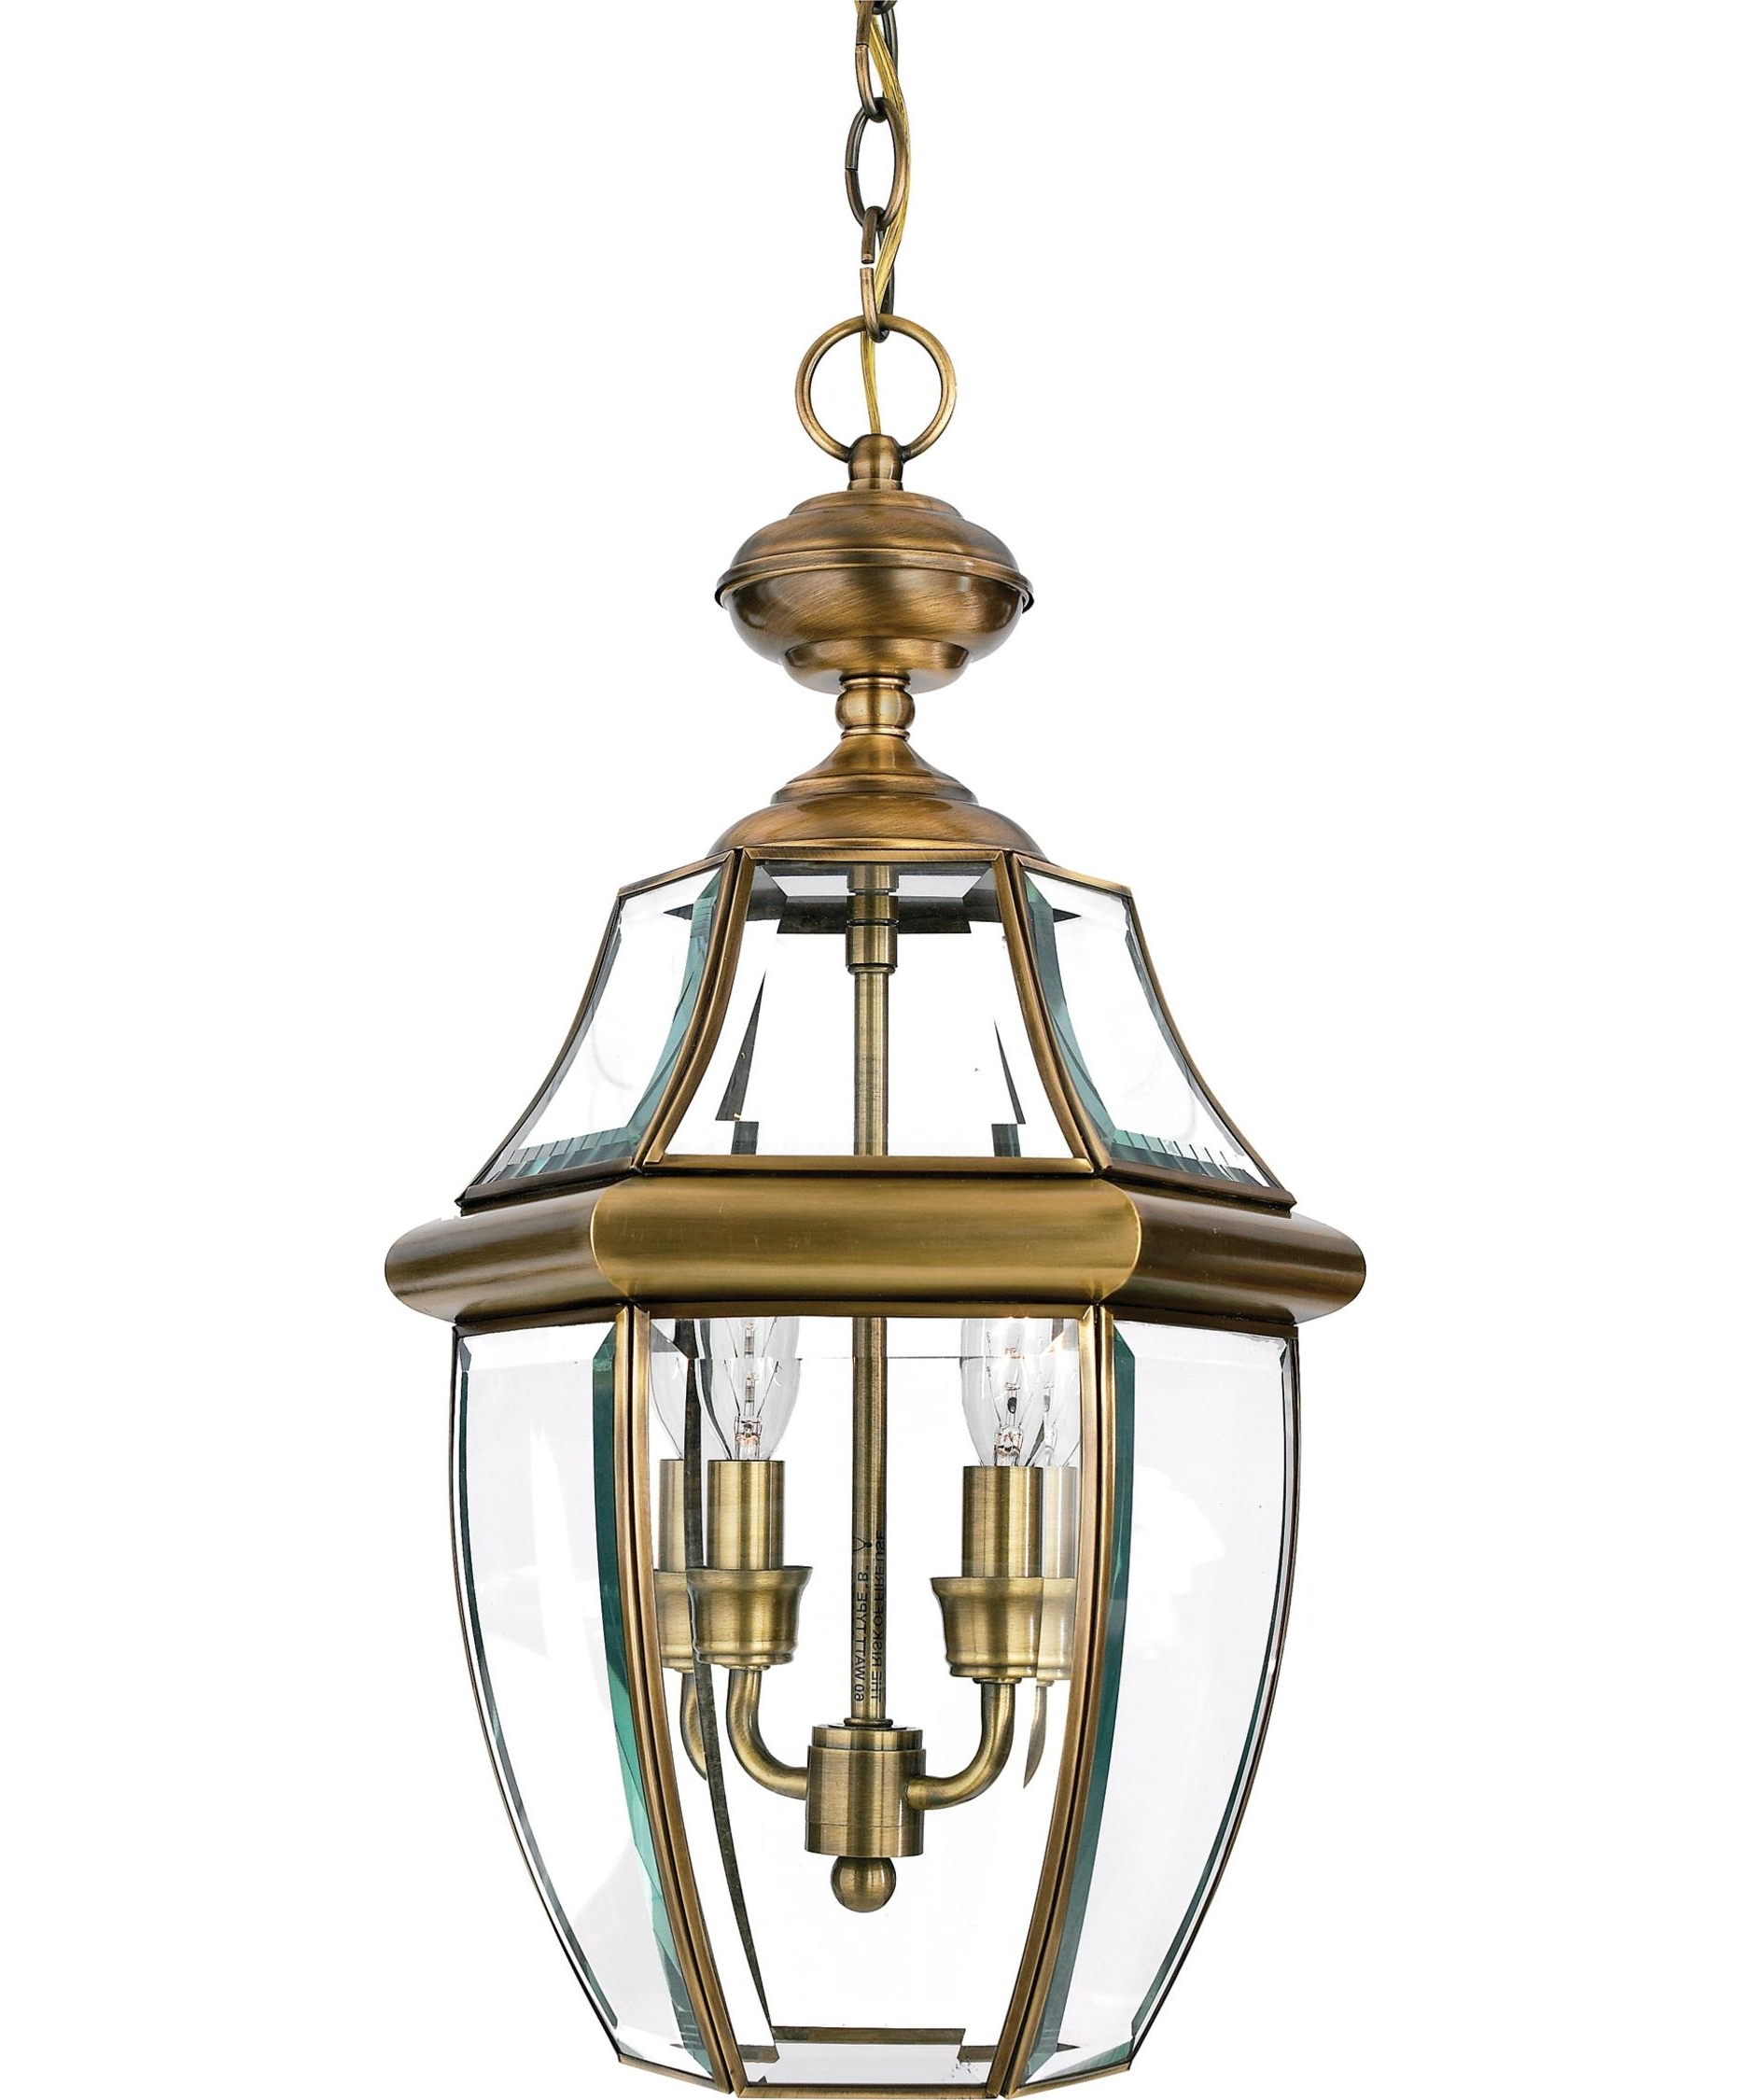 Outdoor Hanging Lights Within Famous Quoizel Ny1178 Newbury 10 Inch Wide 2 Light Outdoor Hanging Lantern (View 11 of 20)